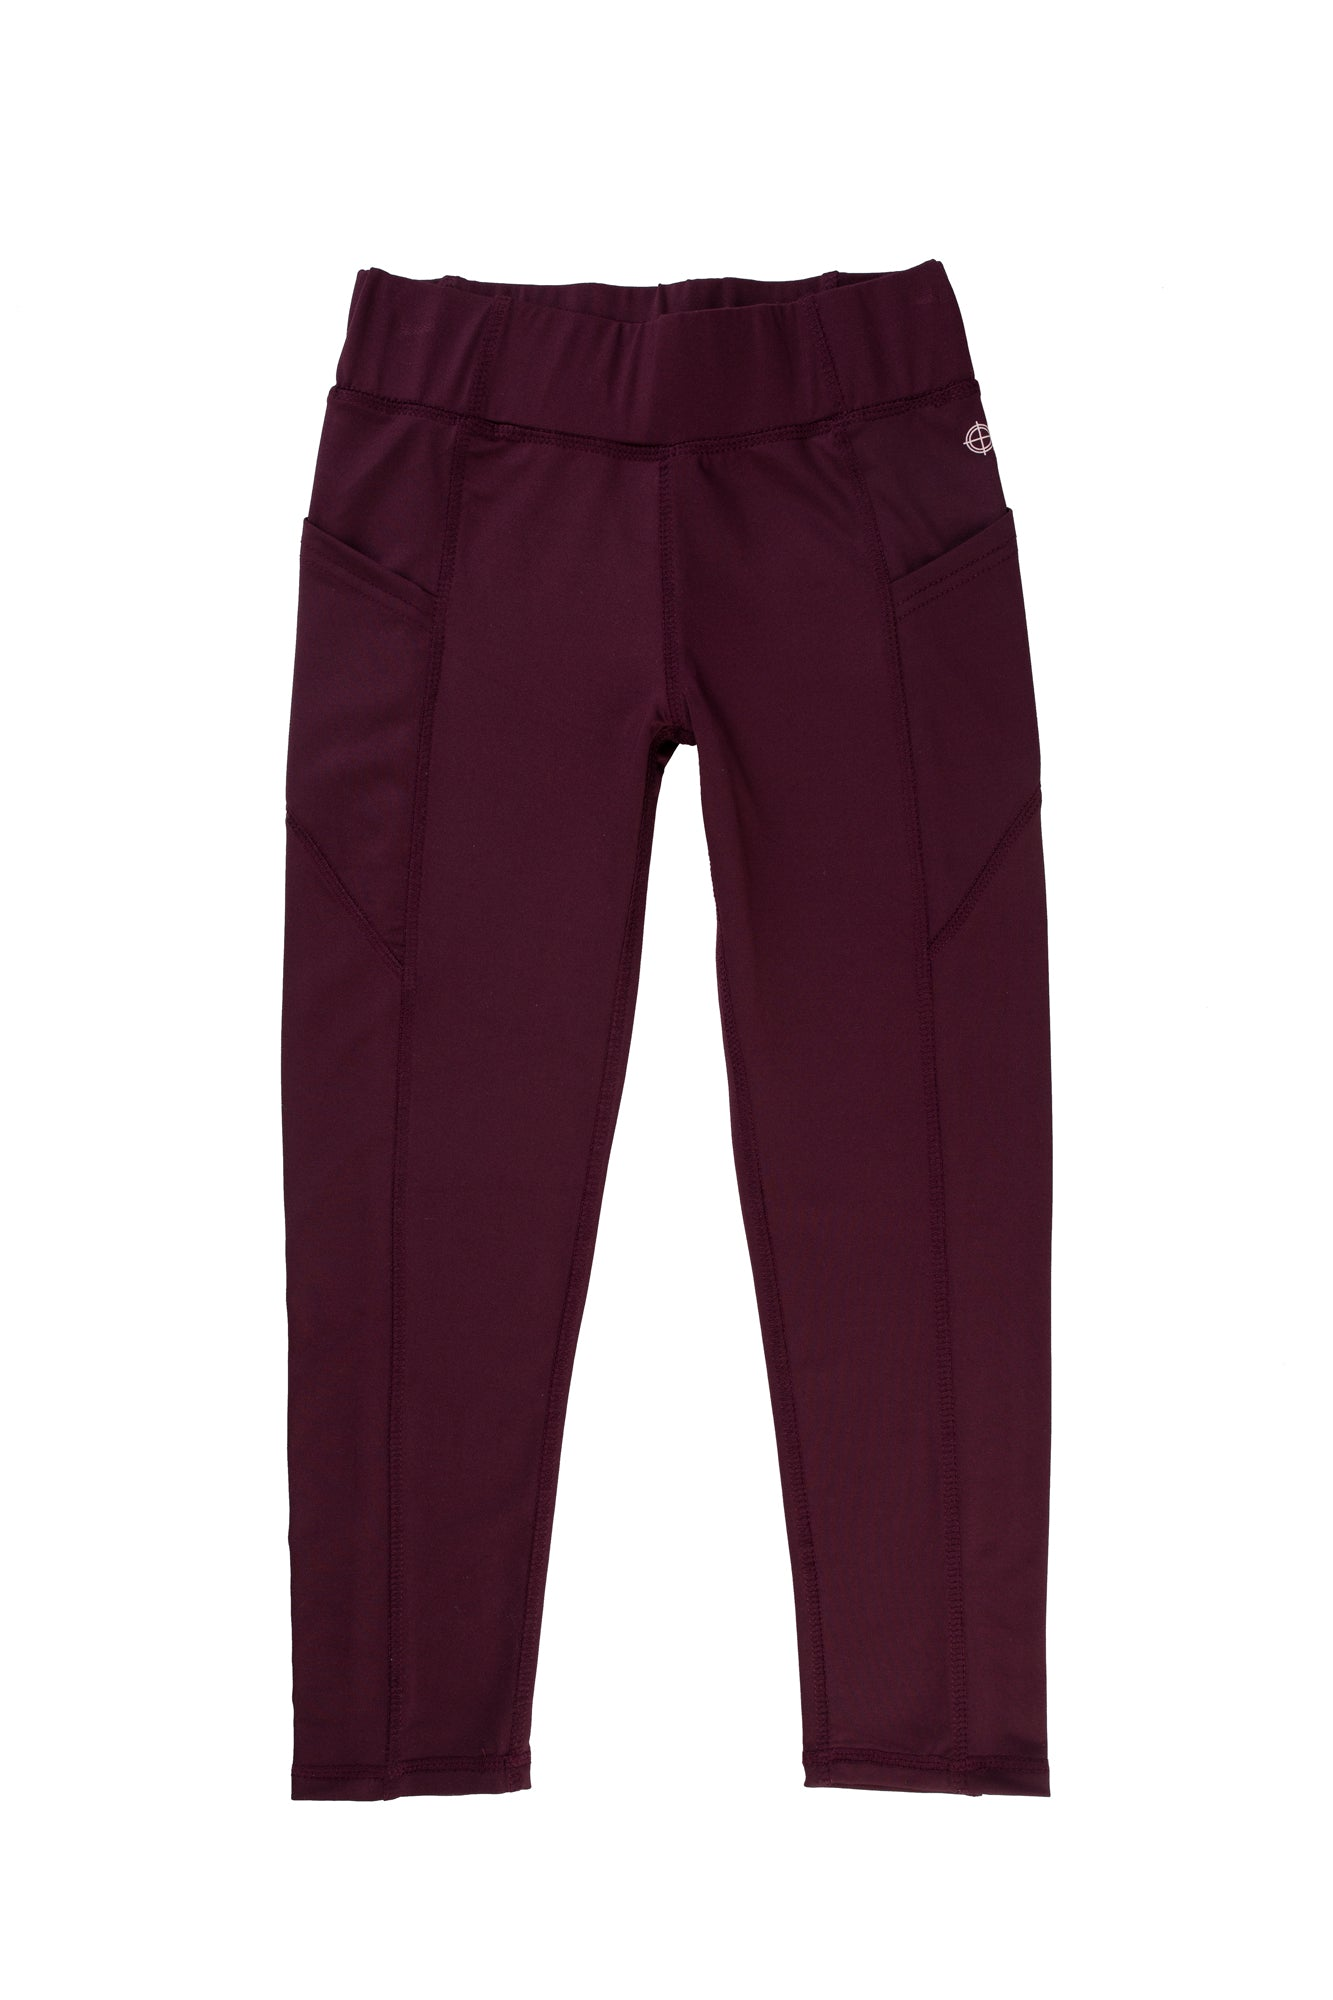 Plum Active Pants - Lullaby's Boutique